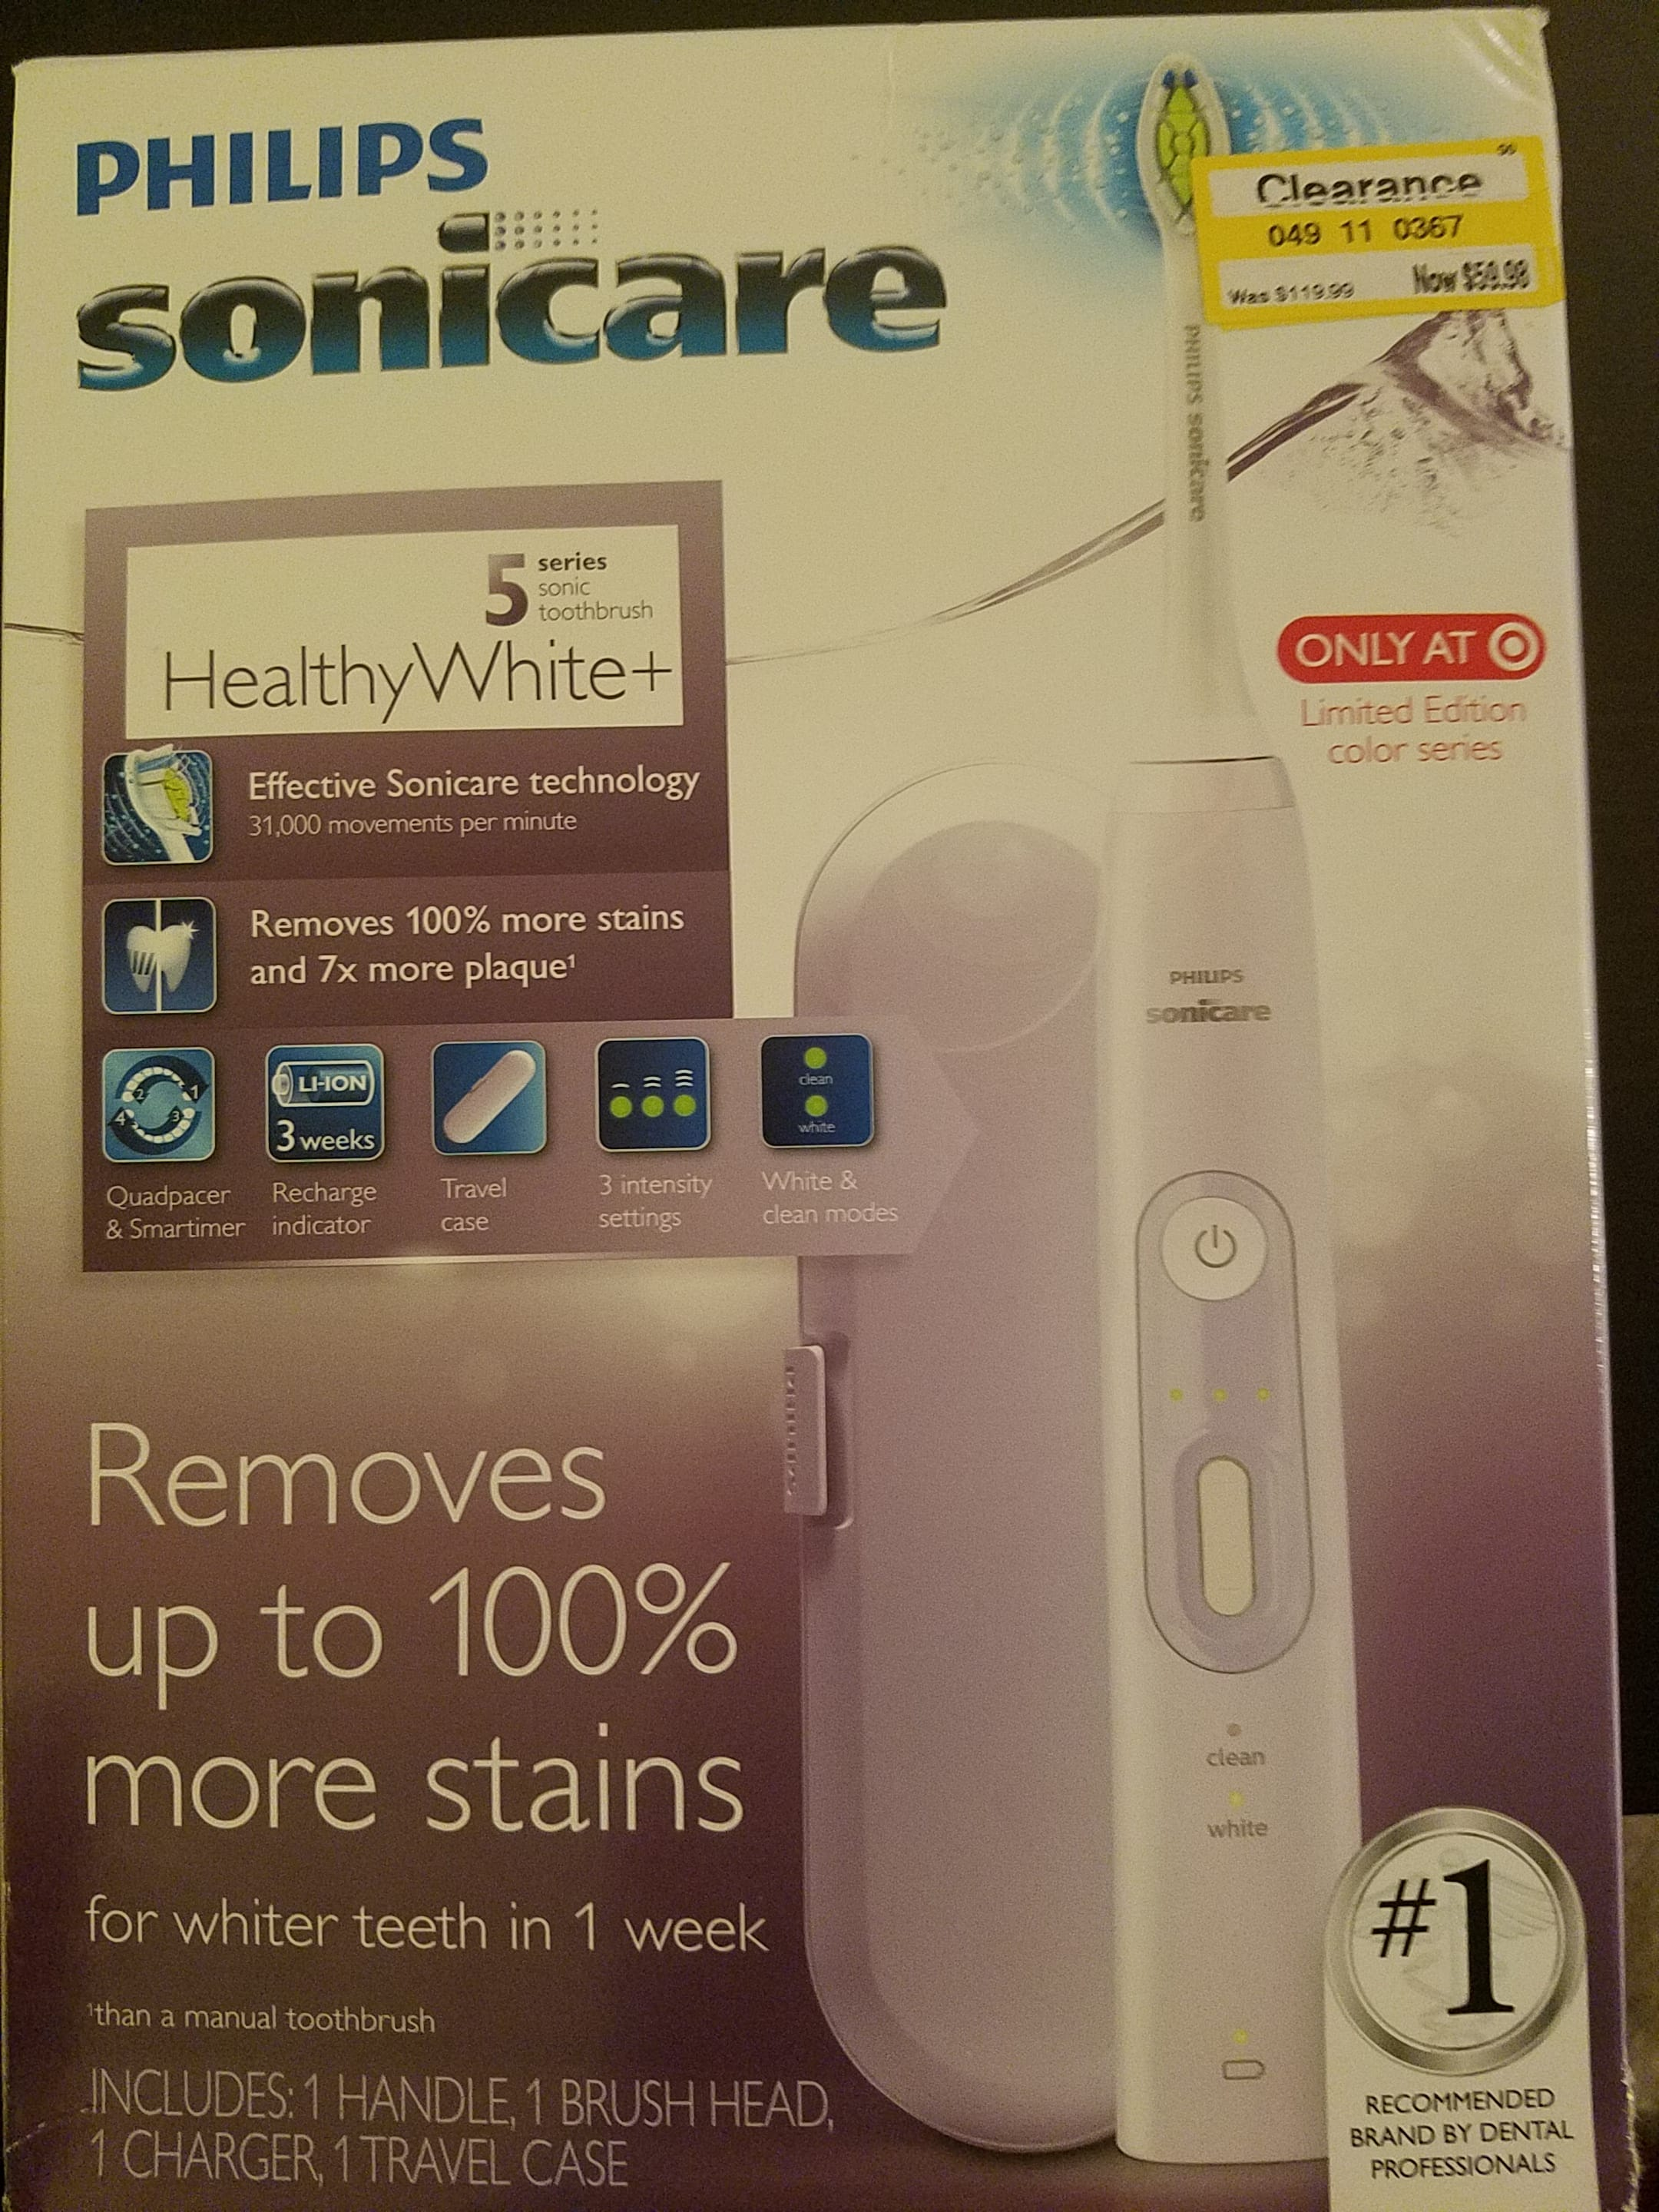 Philips Sonicare Rechargeable Electric Toothbrush Clearance @ Target B&M - YMMV